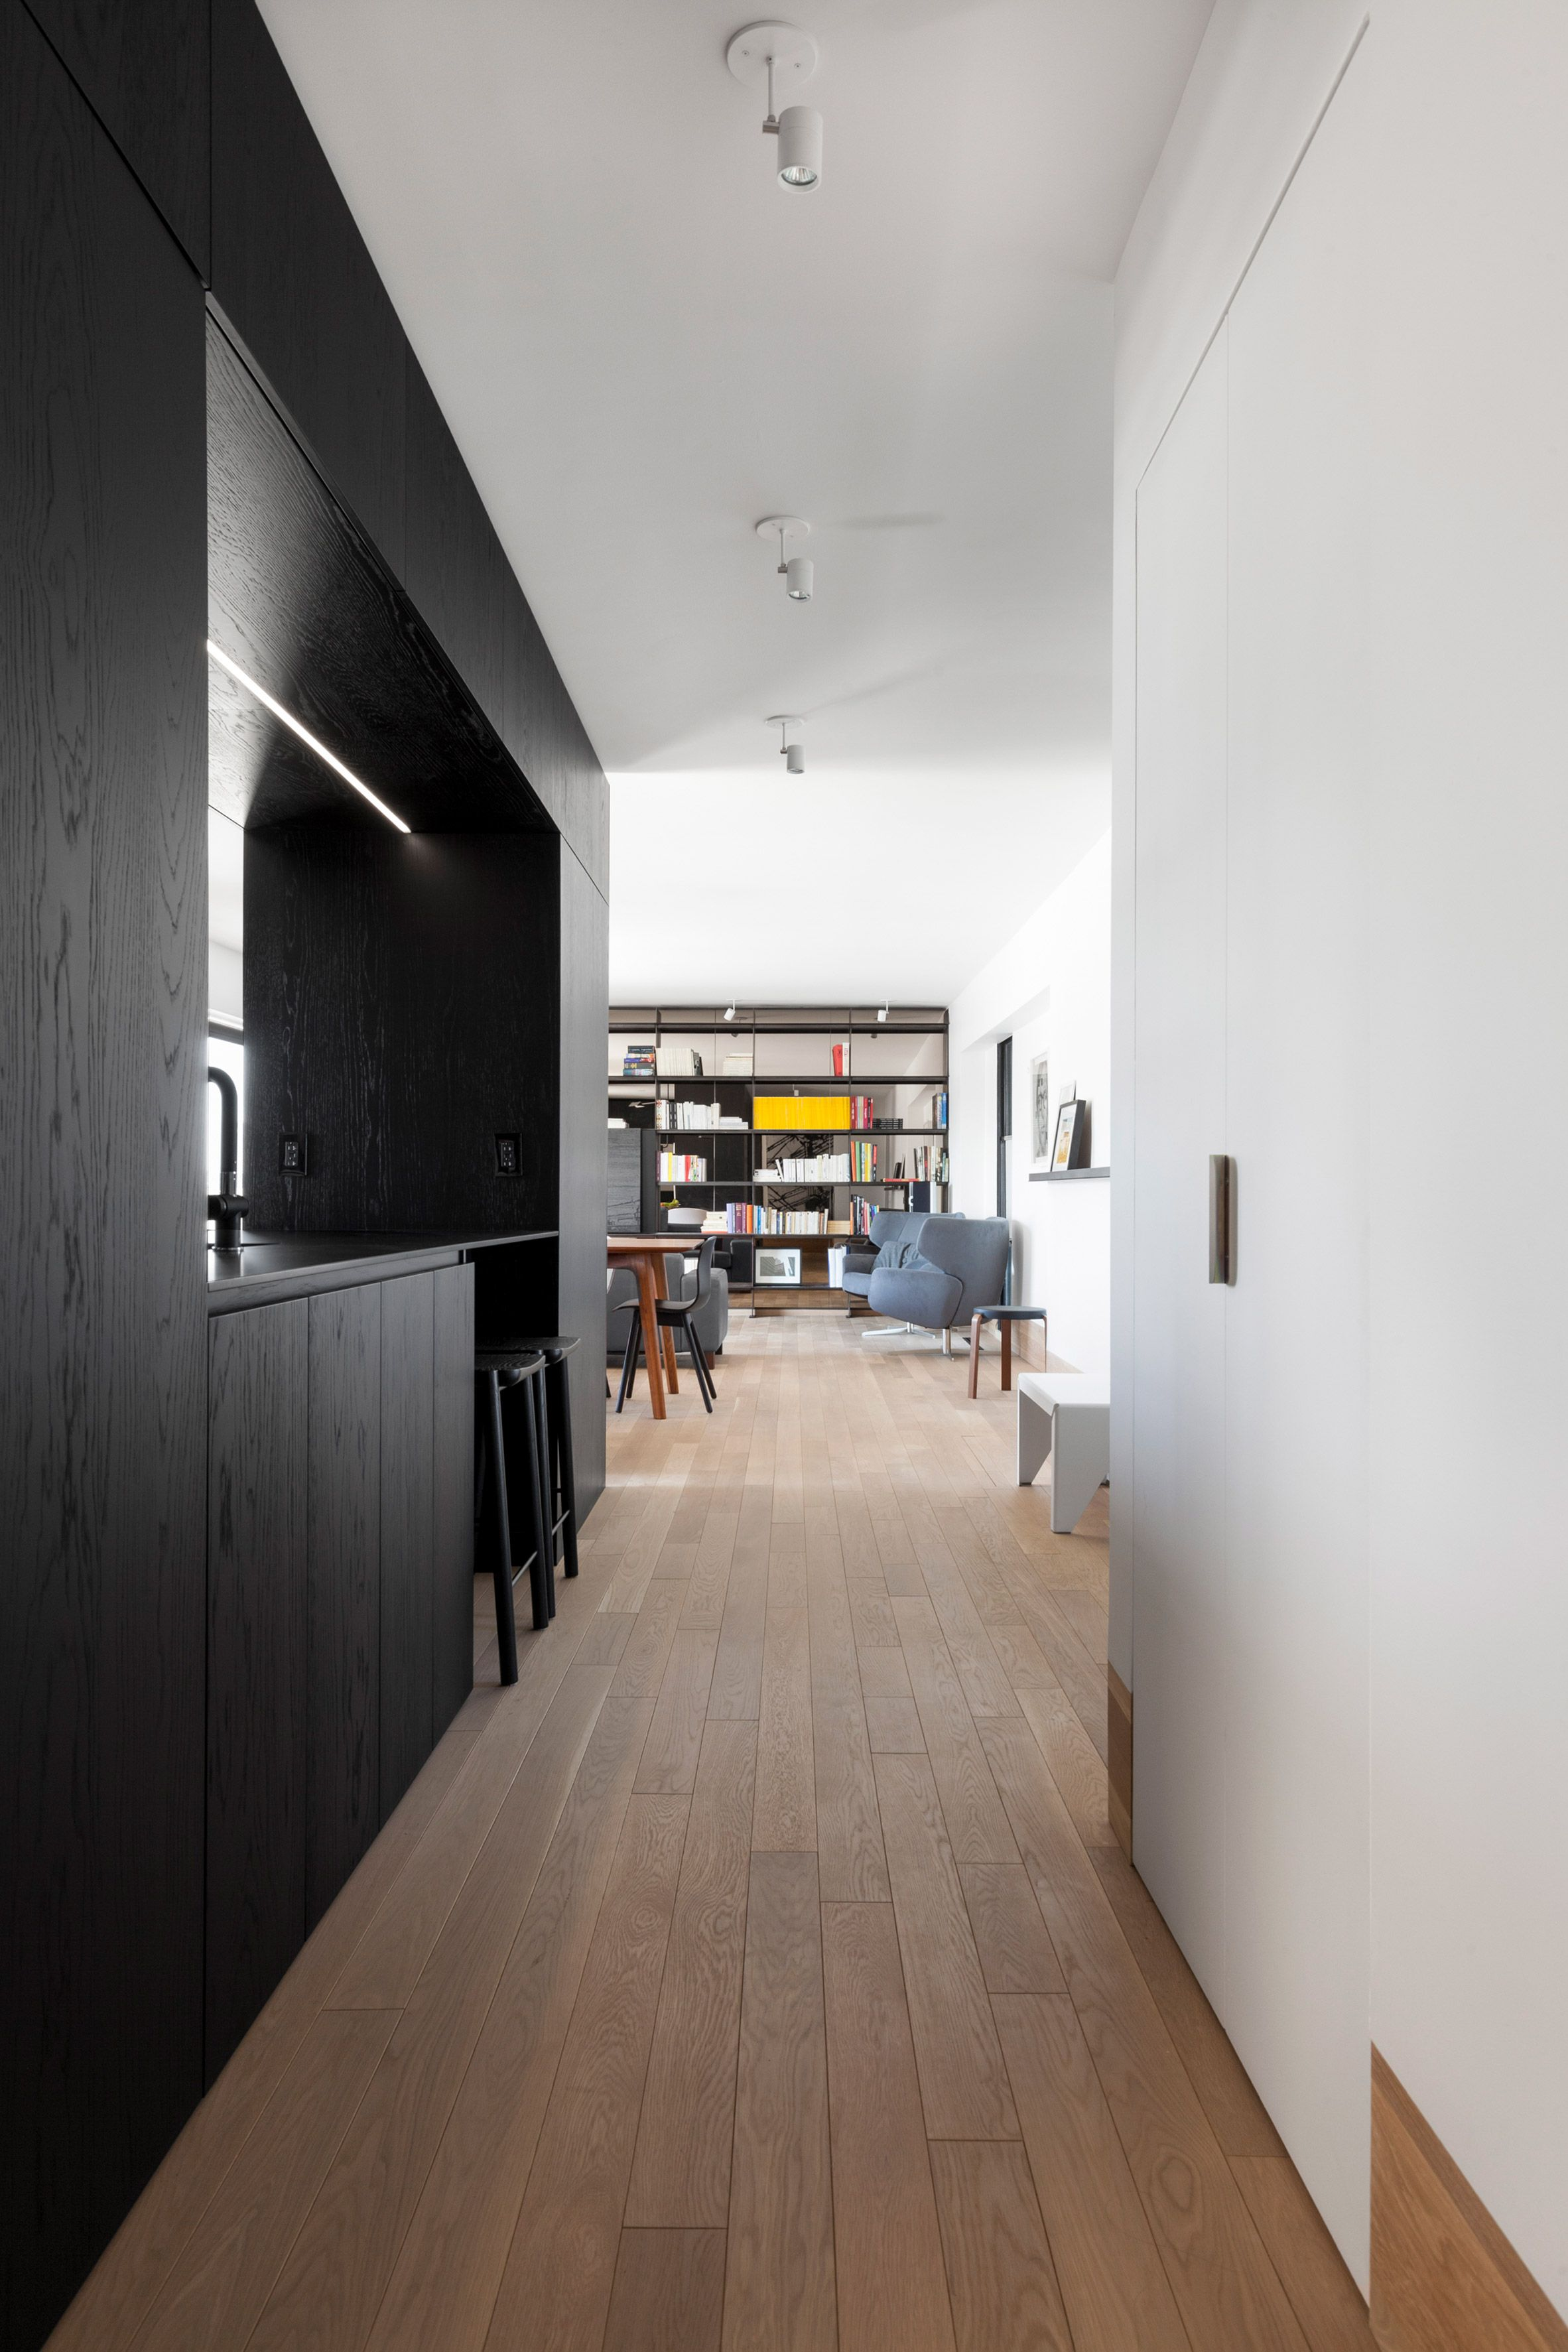 A Concrete Wall Where The Two Volumes Meet Is Left Exposed And Is Covereed With Colourful Markings From Whe Apartment Renovation Interior Design House Interior